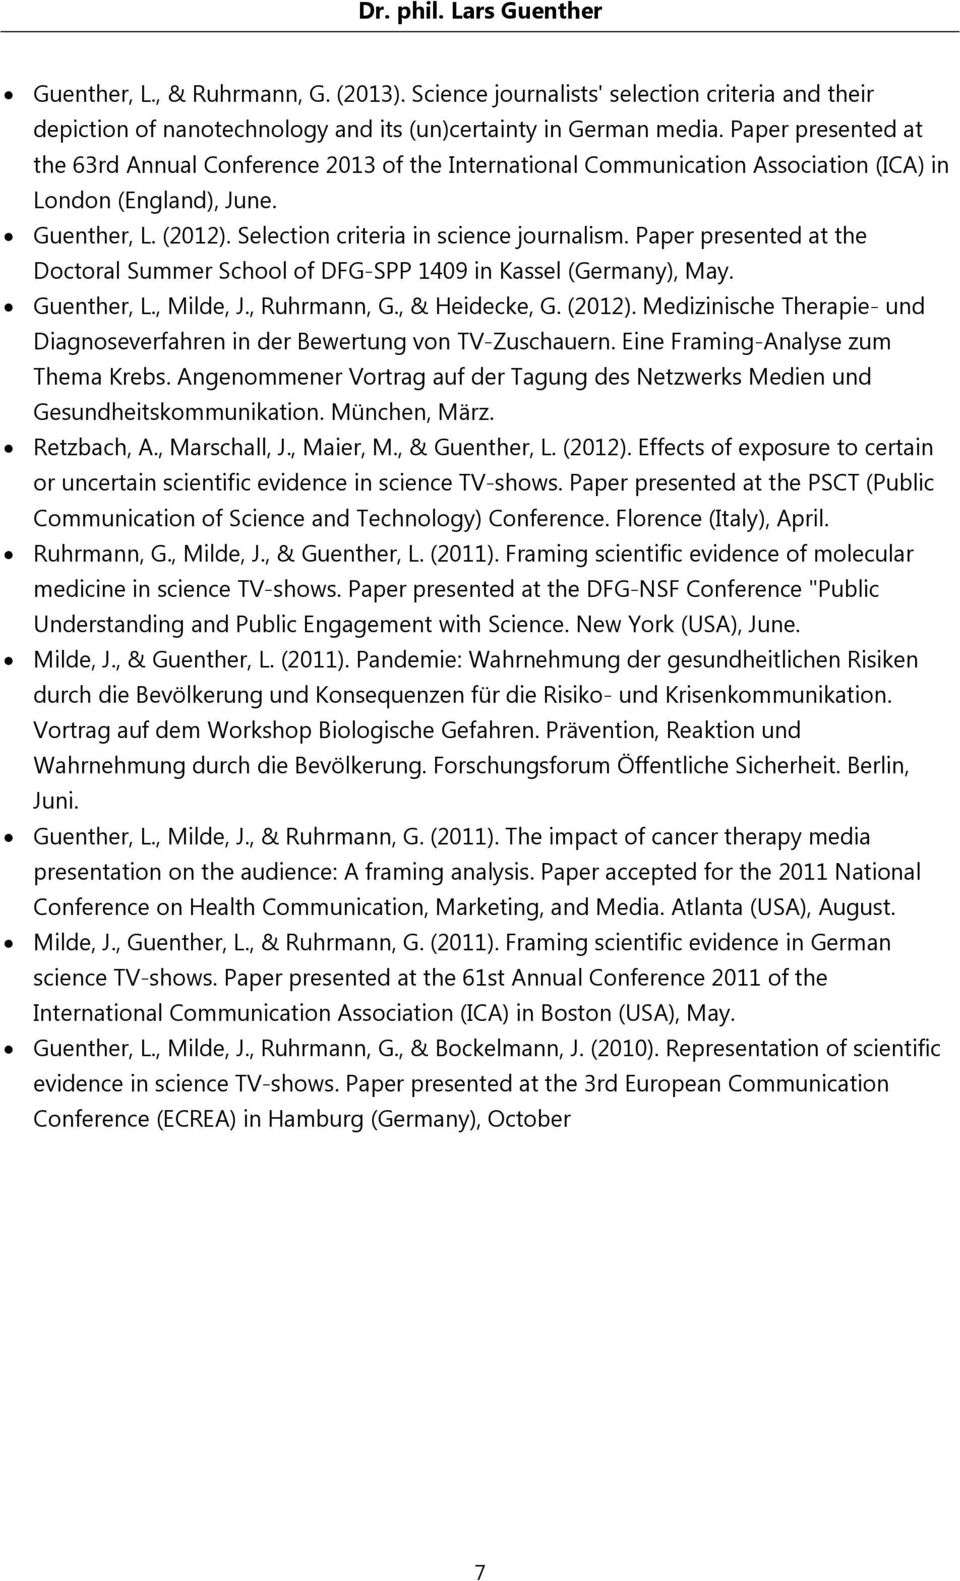 Paper presented at the Doctoral Summer School of DFG-SPP 1409 in Kassel (Germany), May. Guenther, L., Milde, J., Ruhrmann, G., & Heidecke, G. (2012).